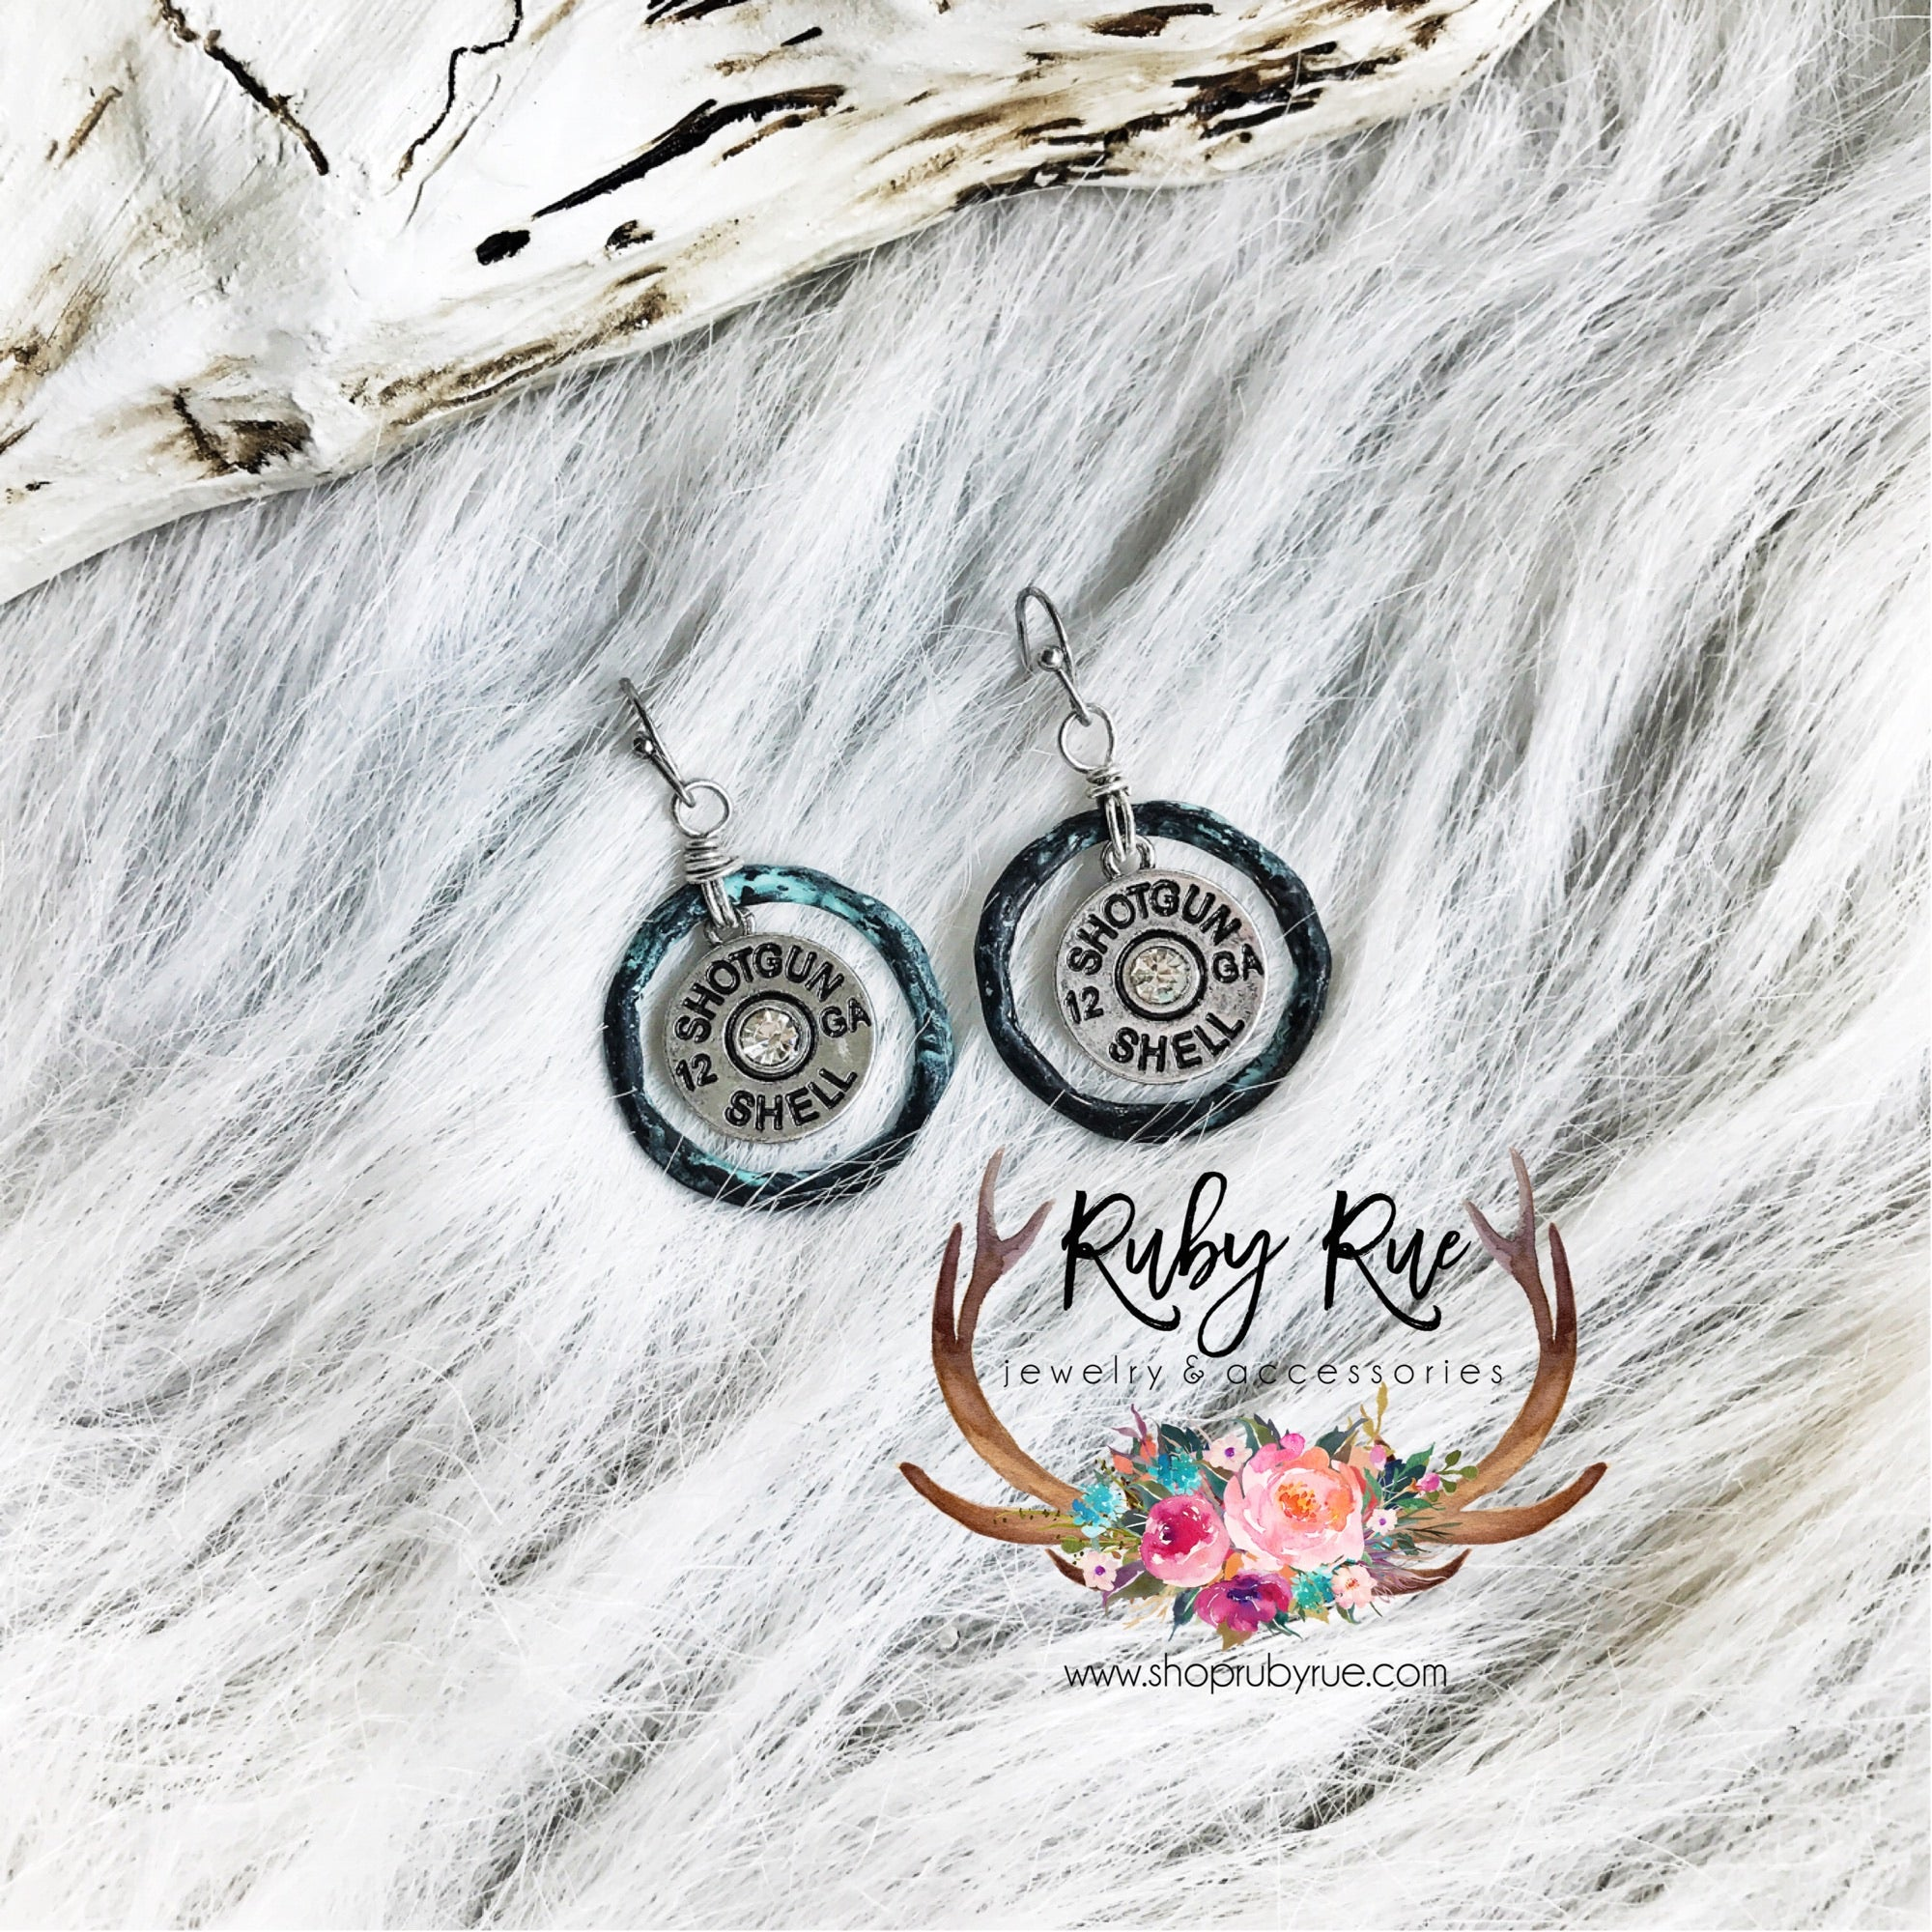 Bullet Dangle Earrings - Ruby Rue Jewelry & Accessories